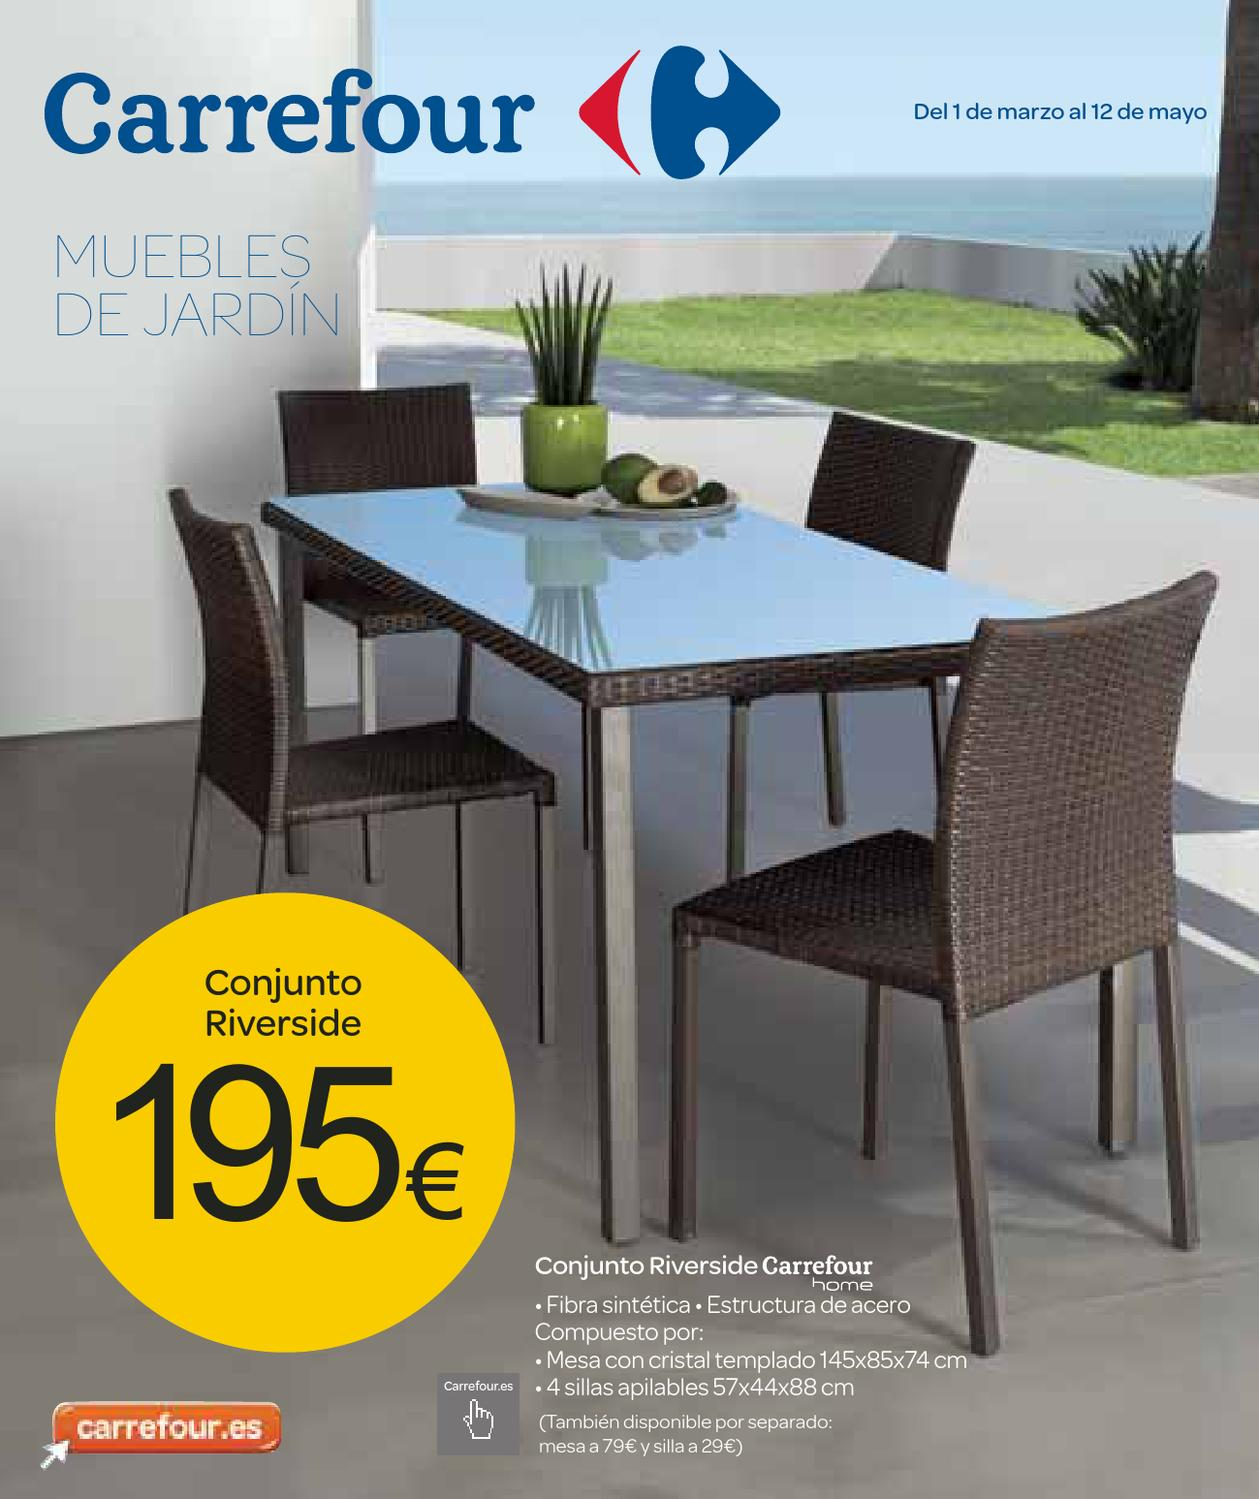 Issuu catalogo de muebles de jardin carrefour by for Carrefour muebles jardin